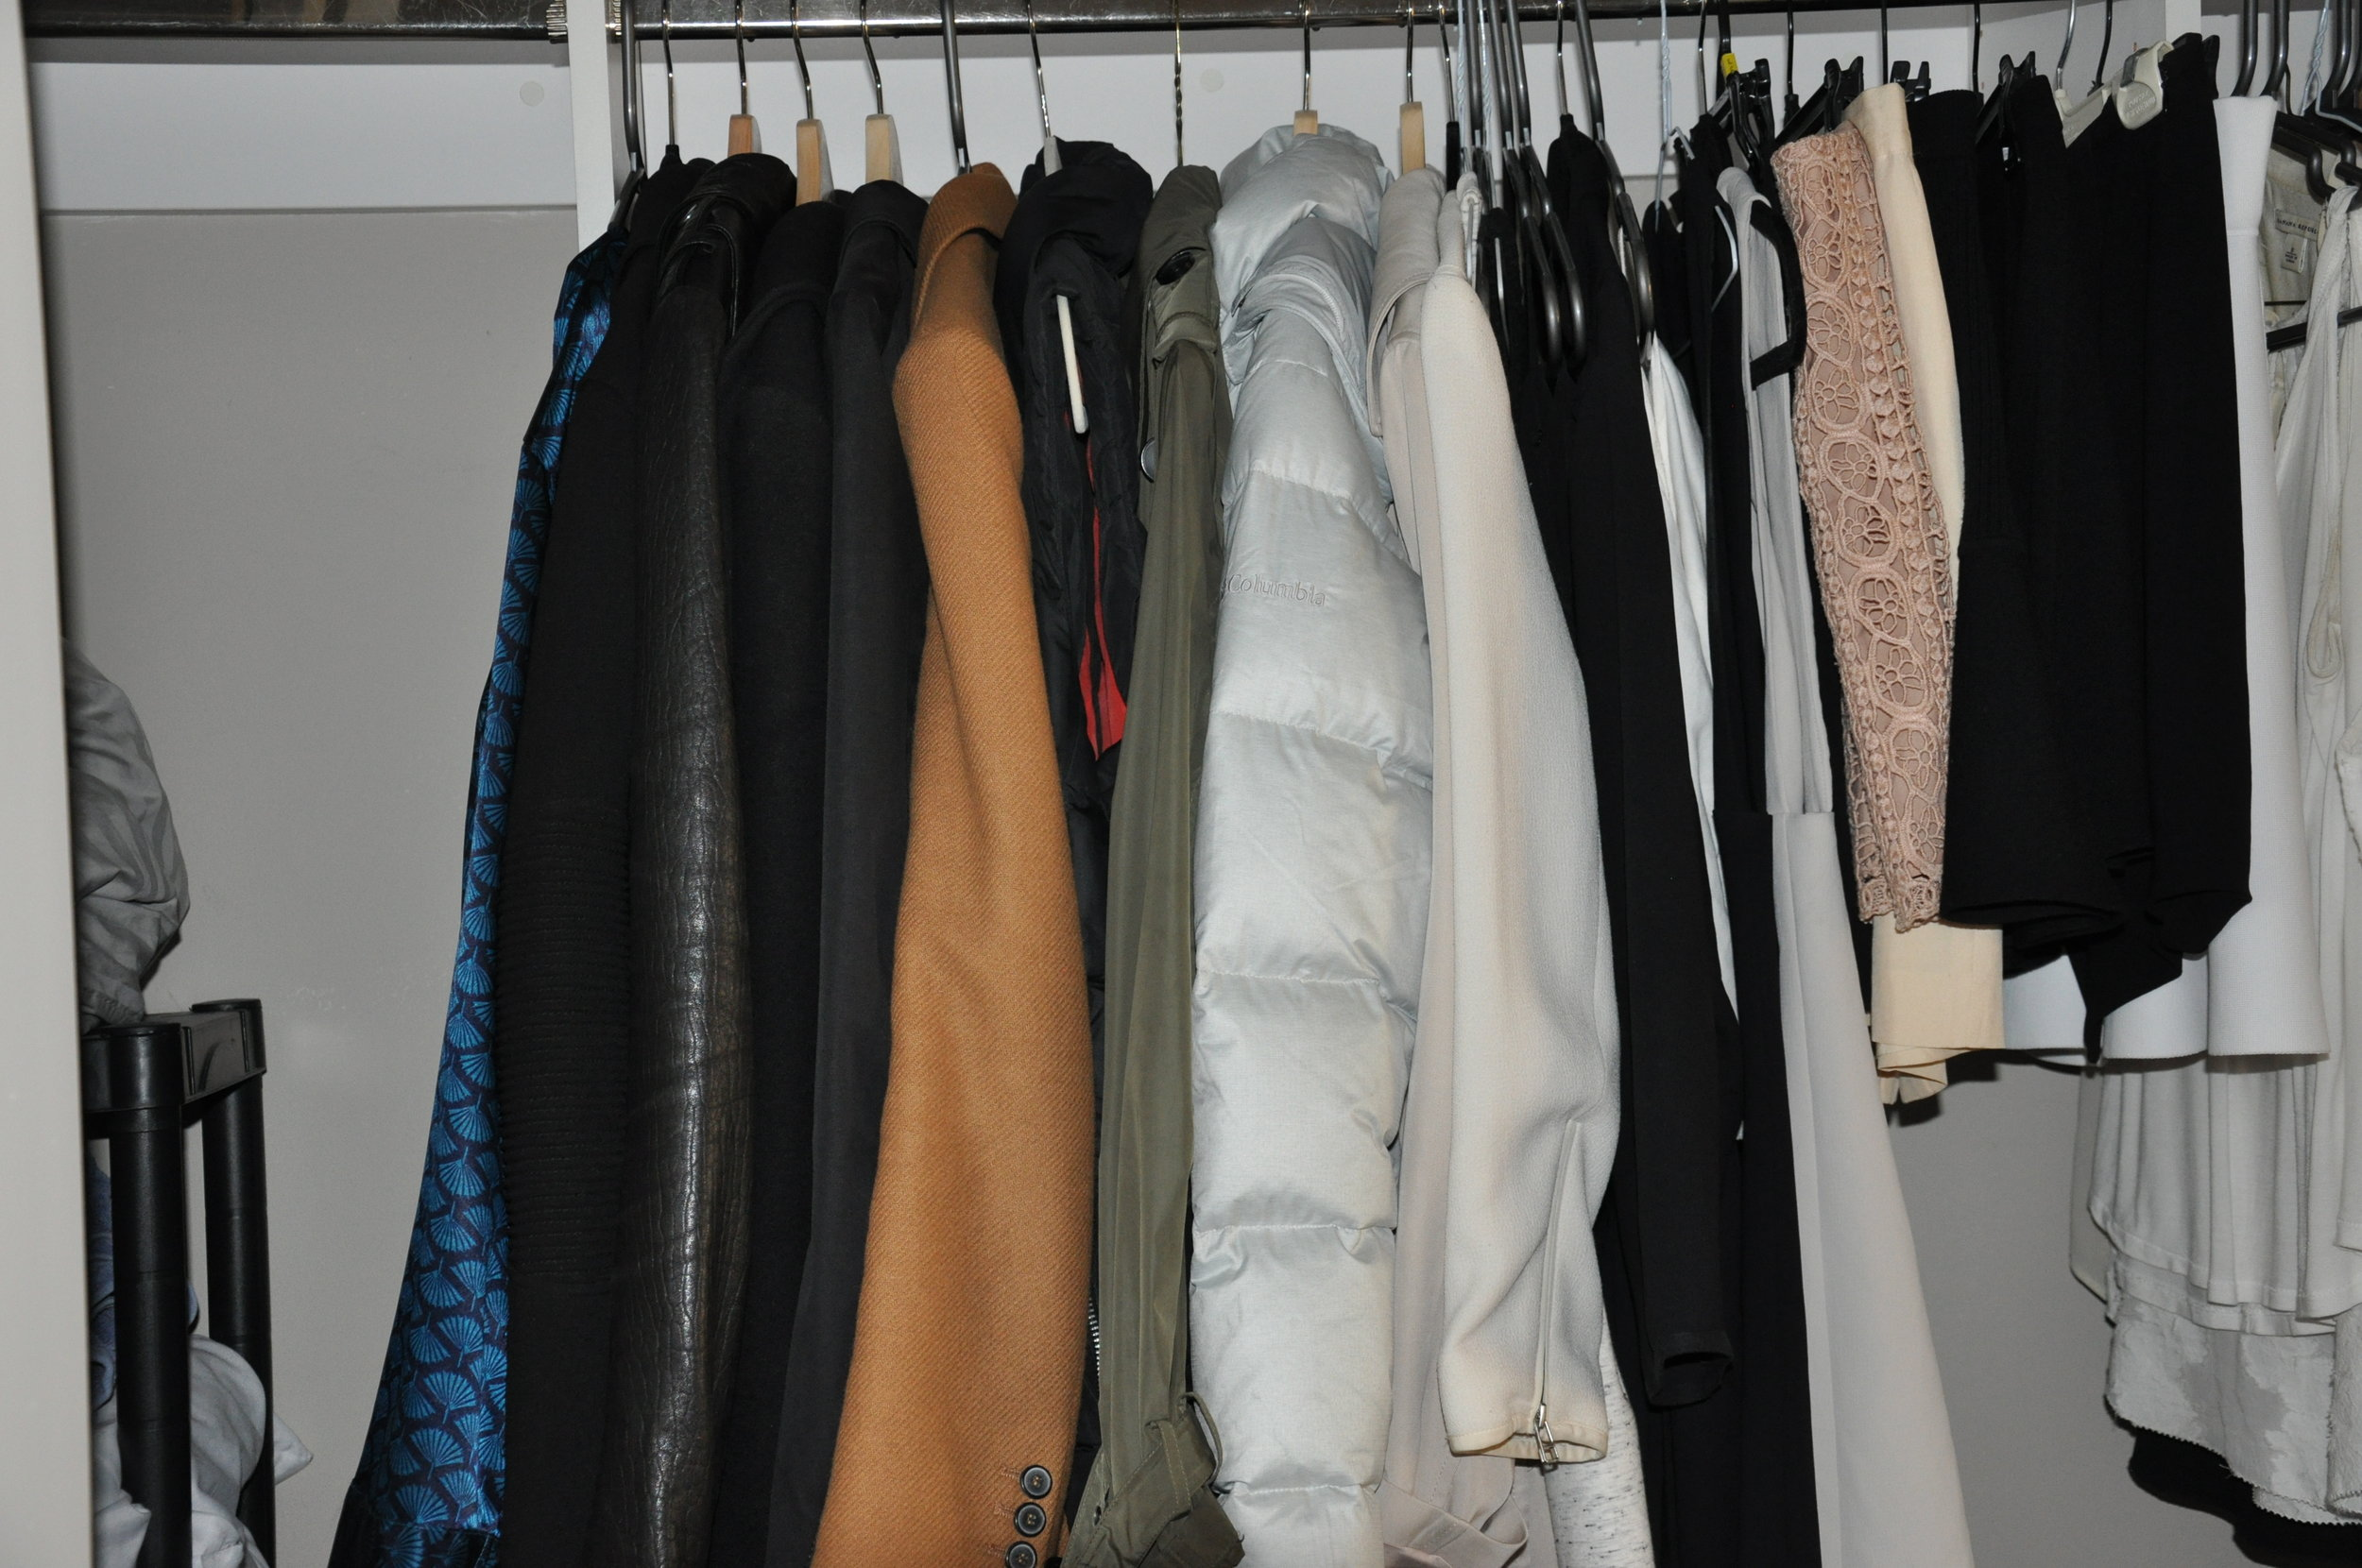 These are some of my puffy winter coats!